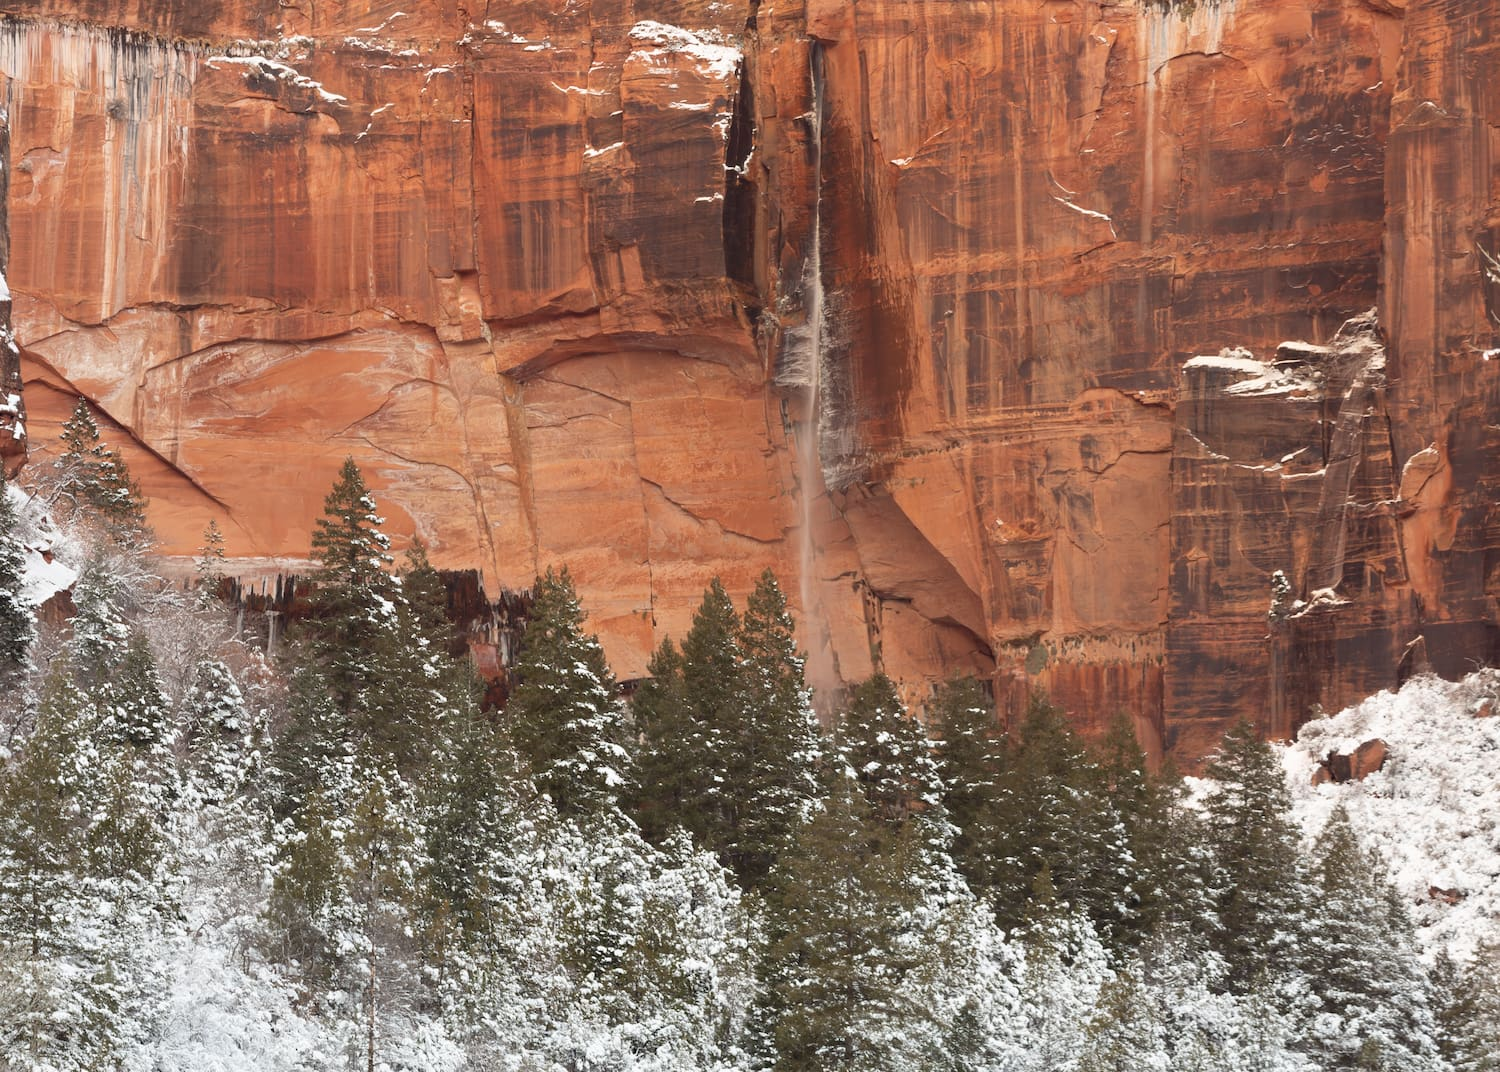 A narrow waterfall streams down a red sandstone cliff face in front of snow covered hills and pine trees.